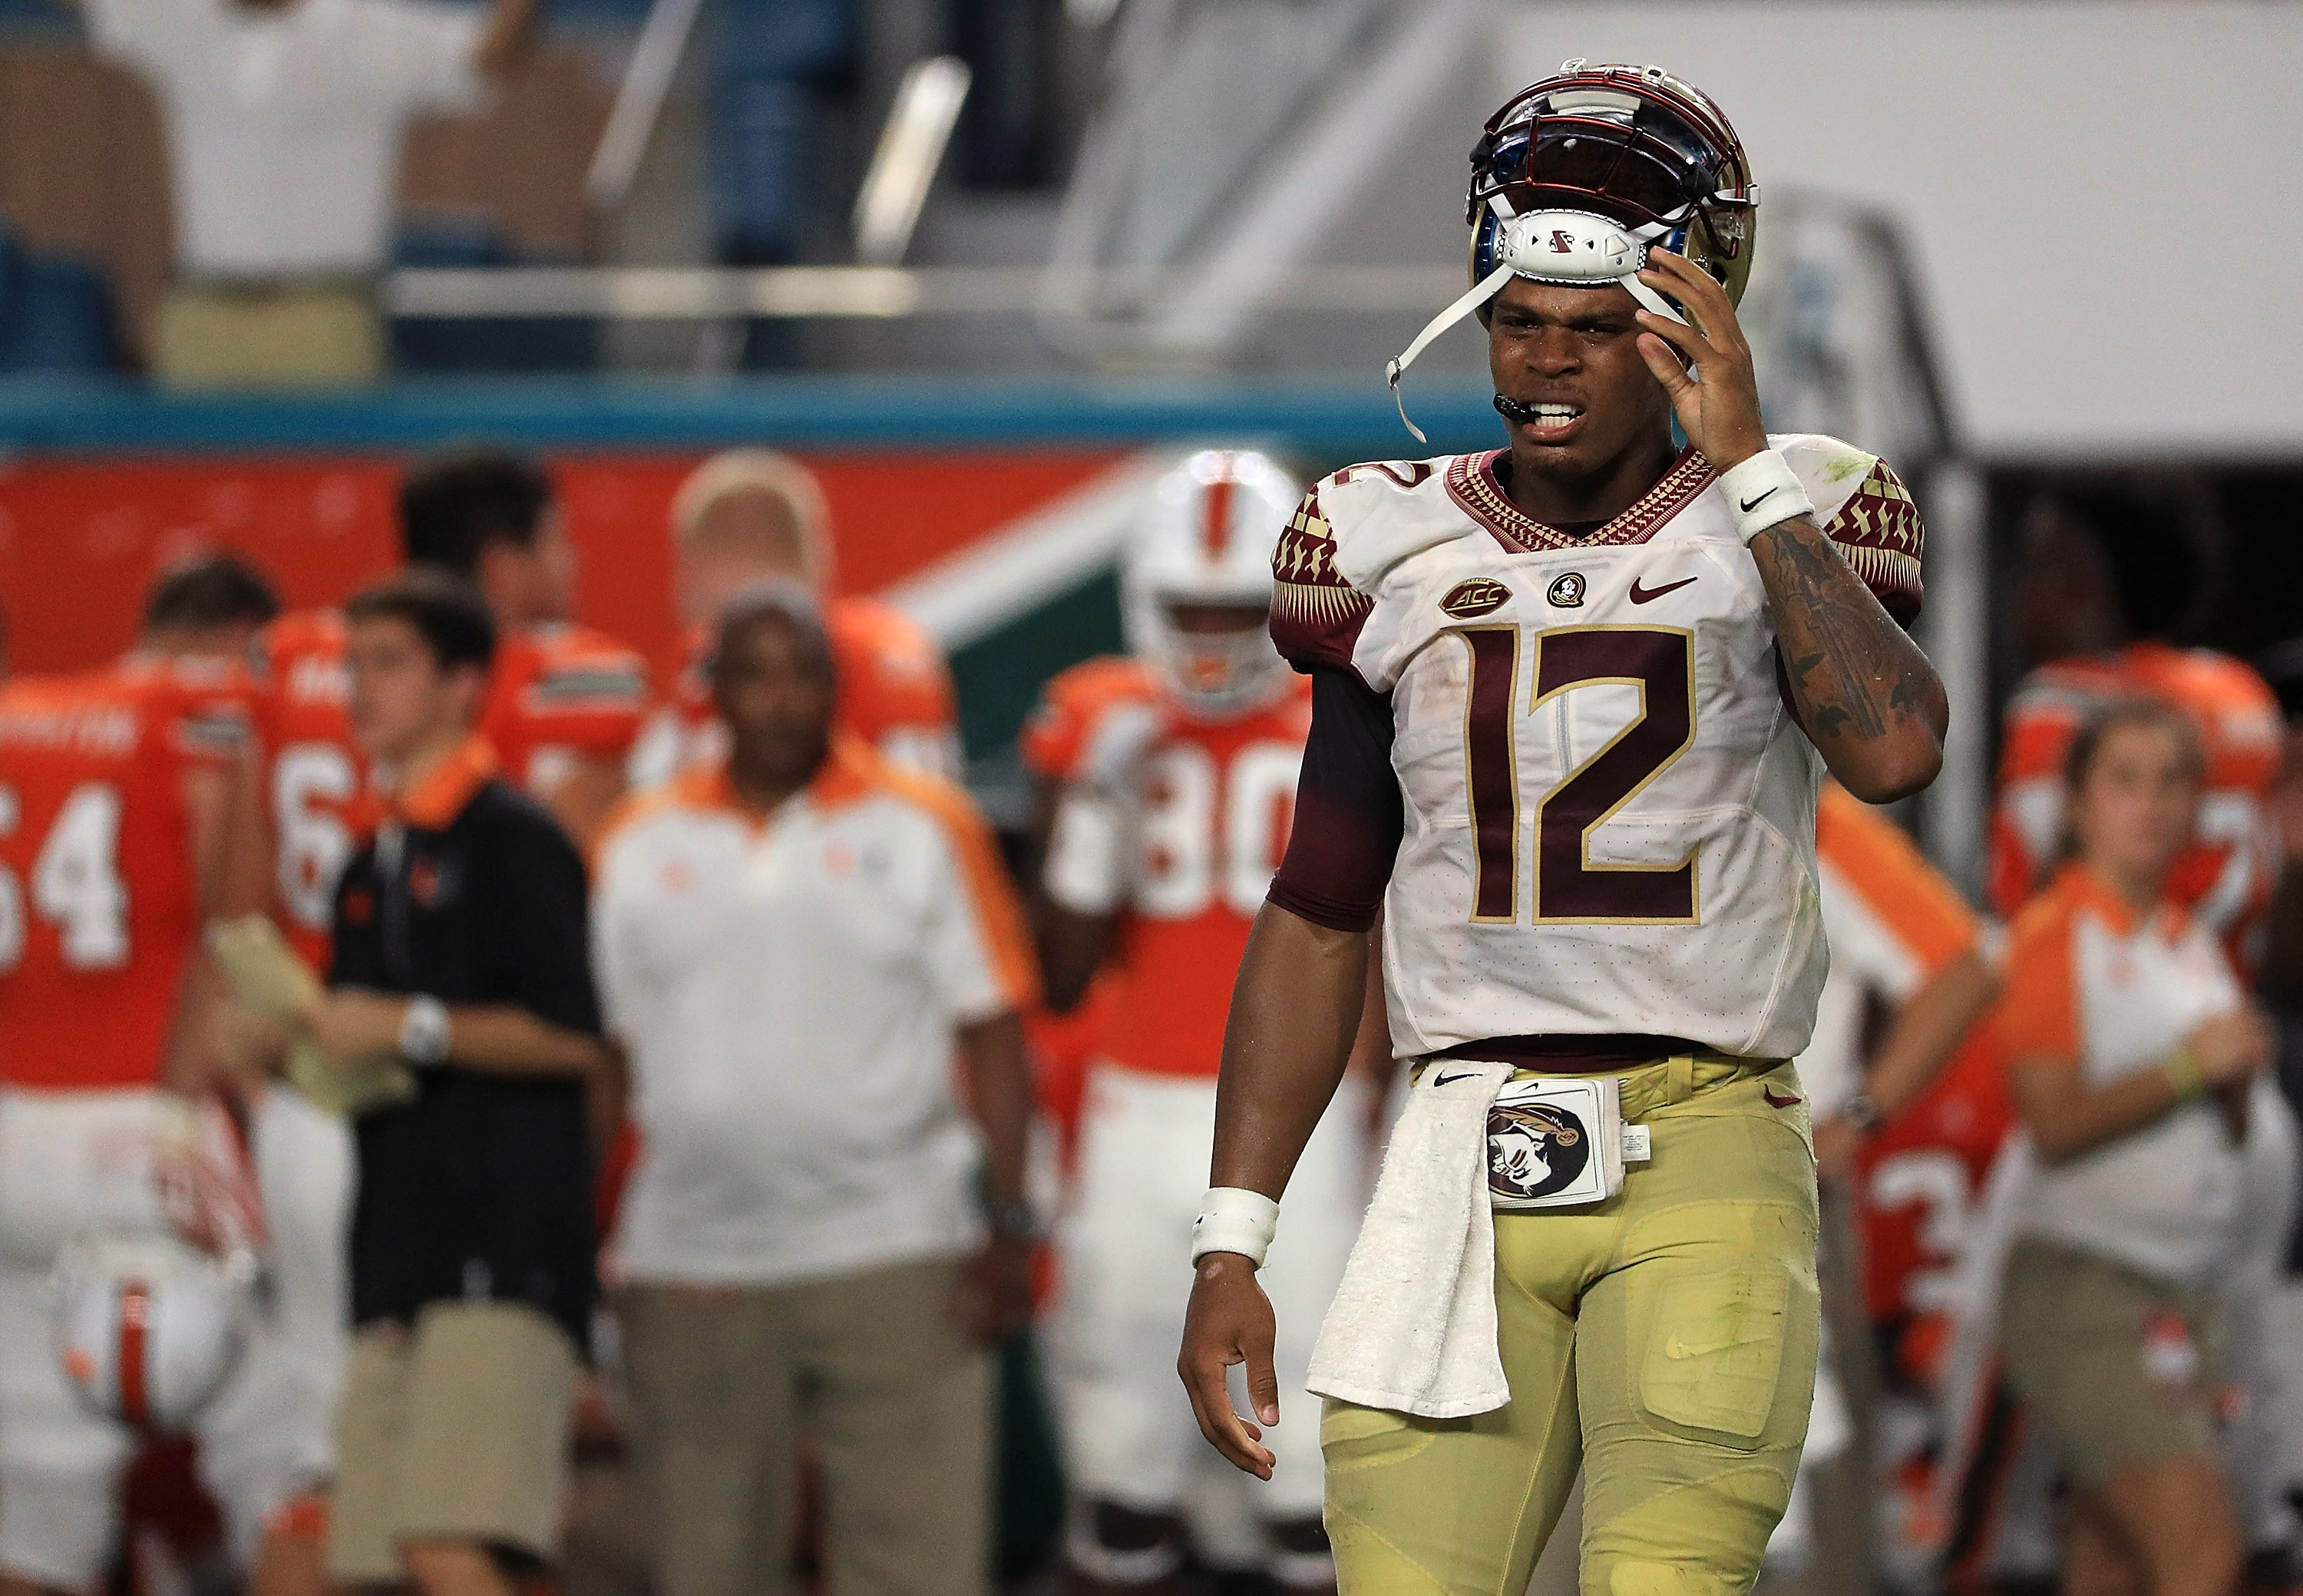 FSU QB Deondre Francois out for season with knee injury